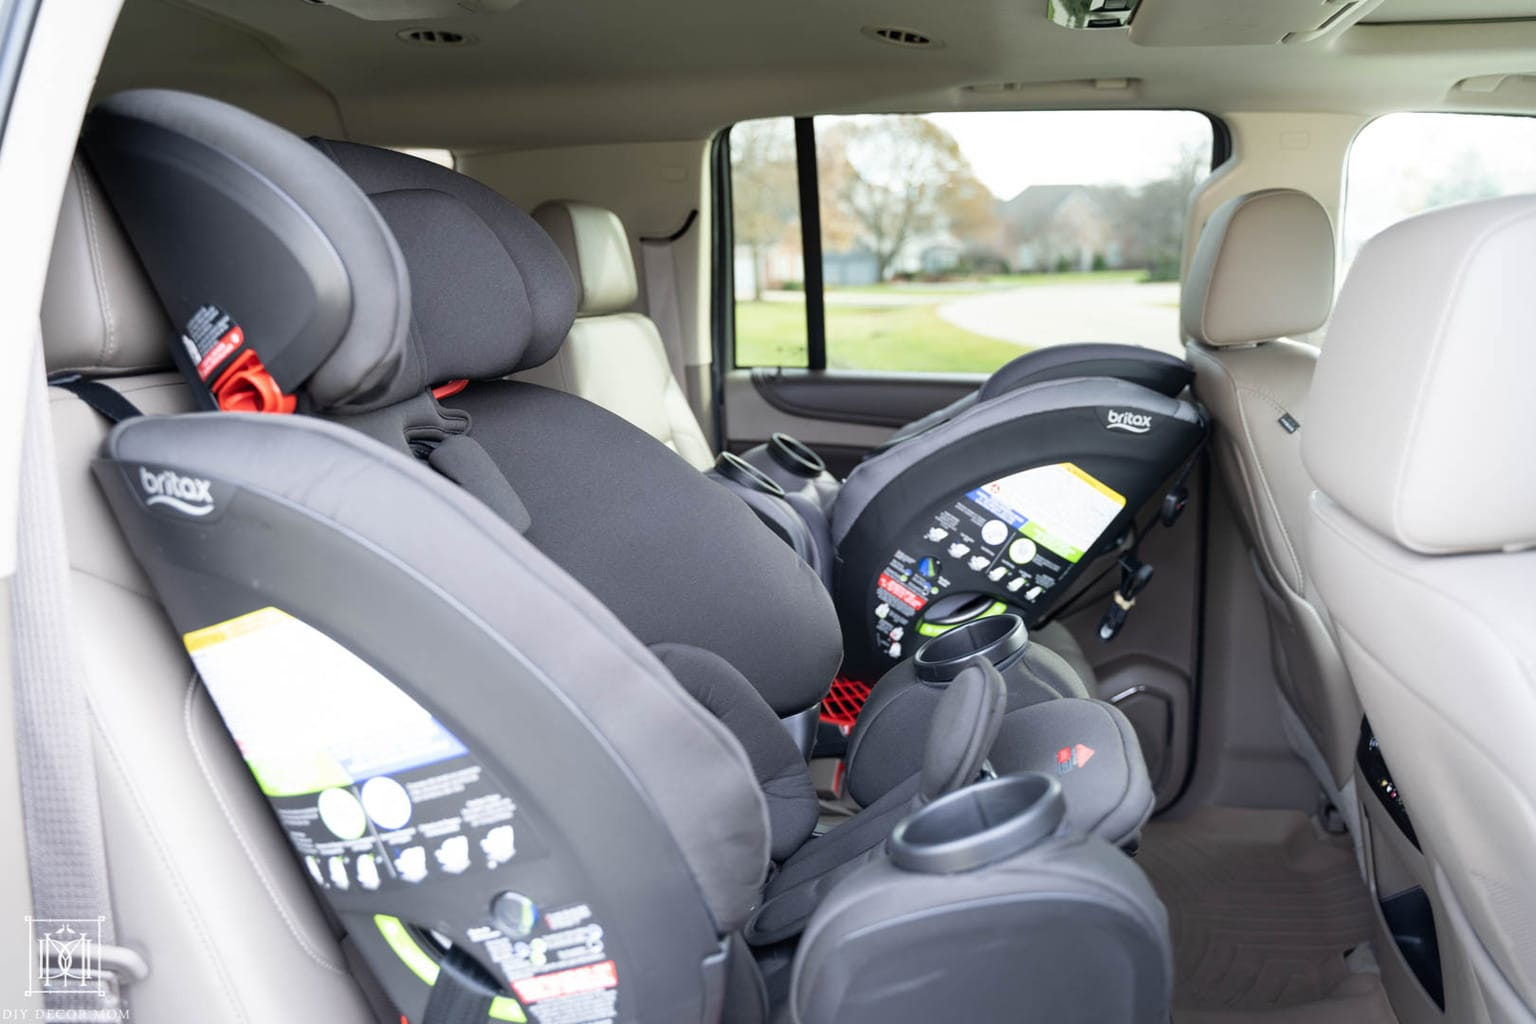 car seats in a suburban